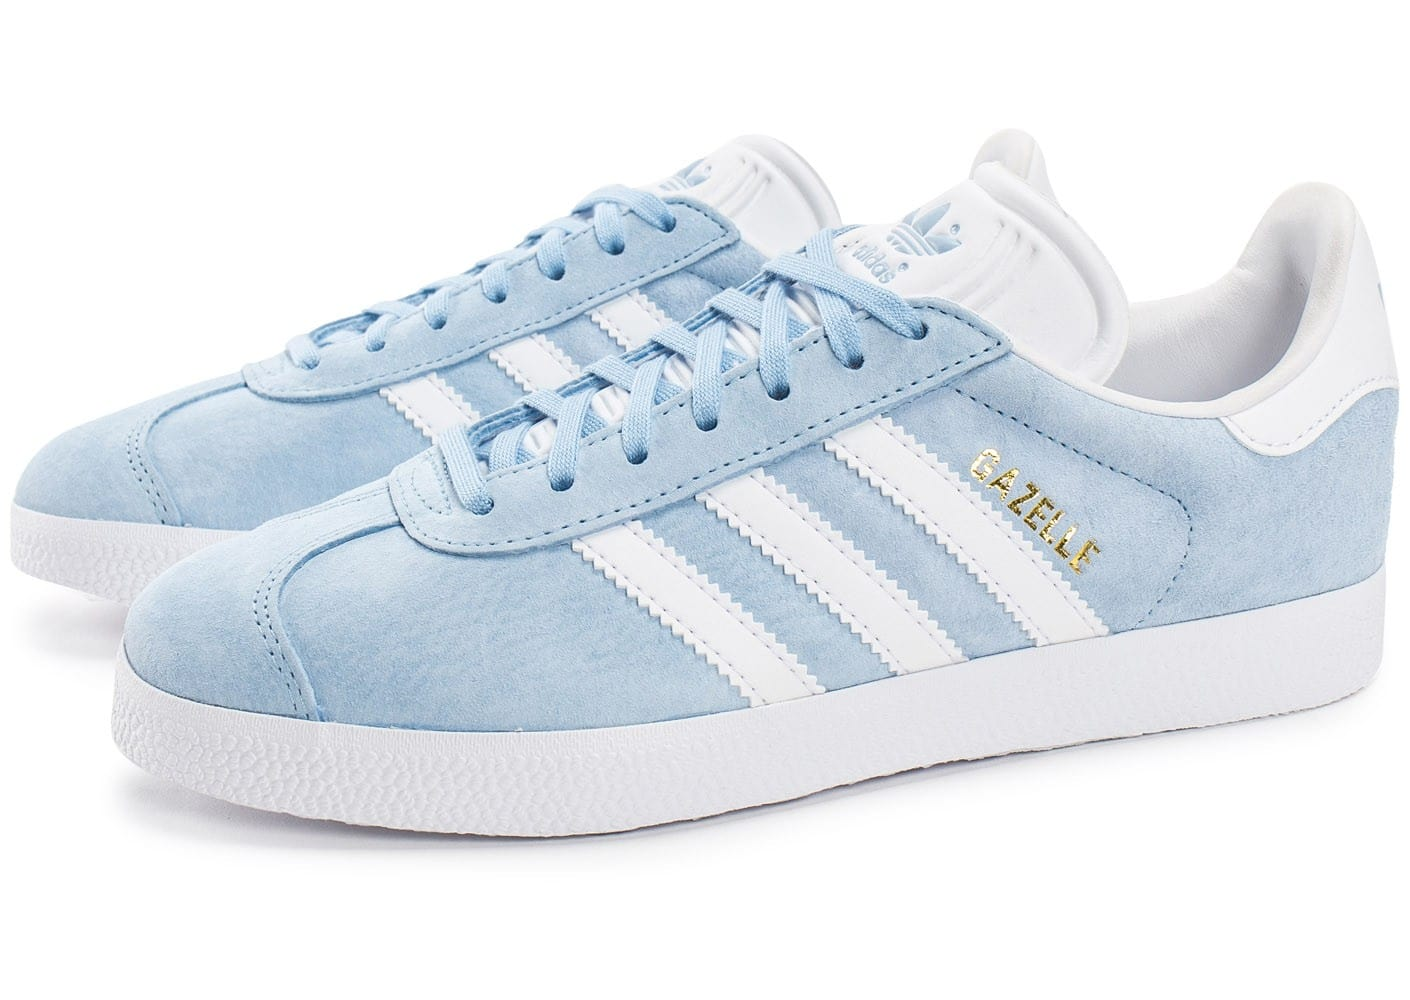 adidas gazelle blanche et bleu chaussures de. Black Bedroom Furniture Sets. Home Design Ideas